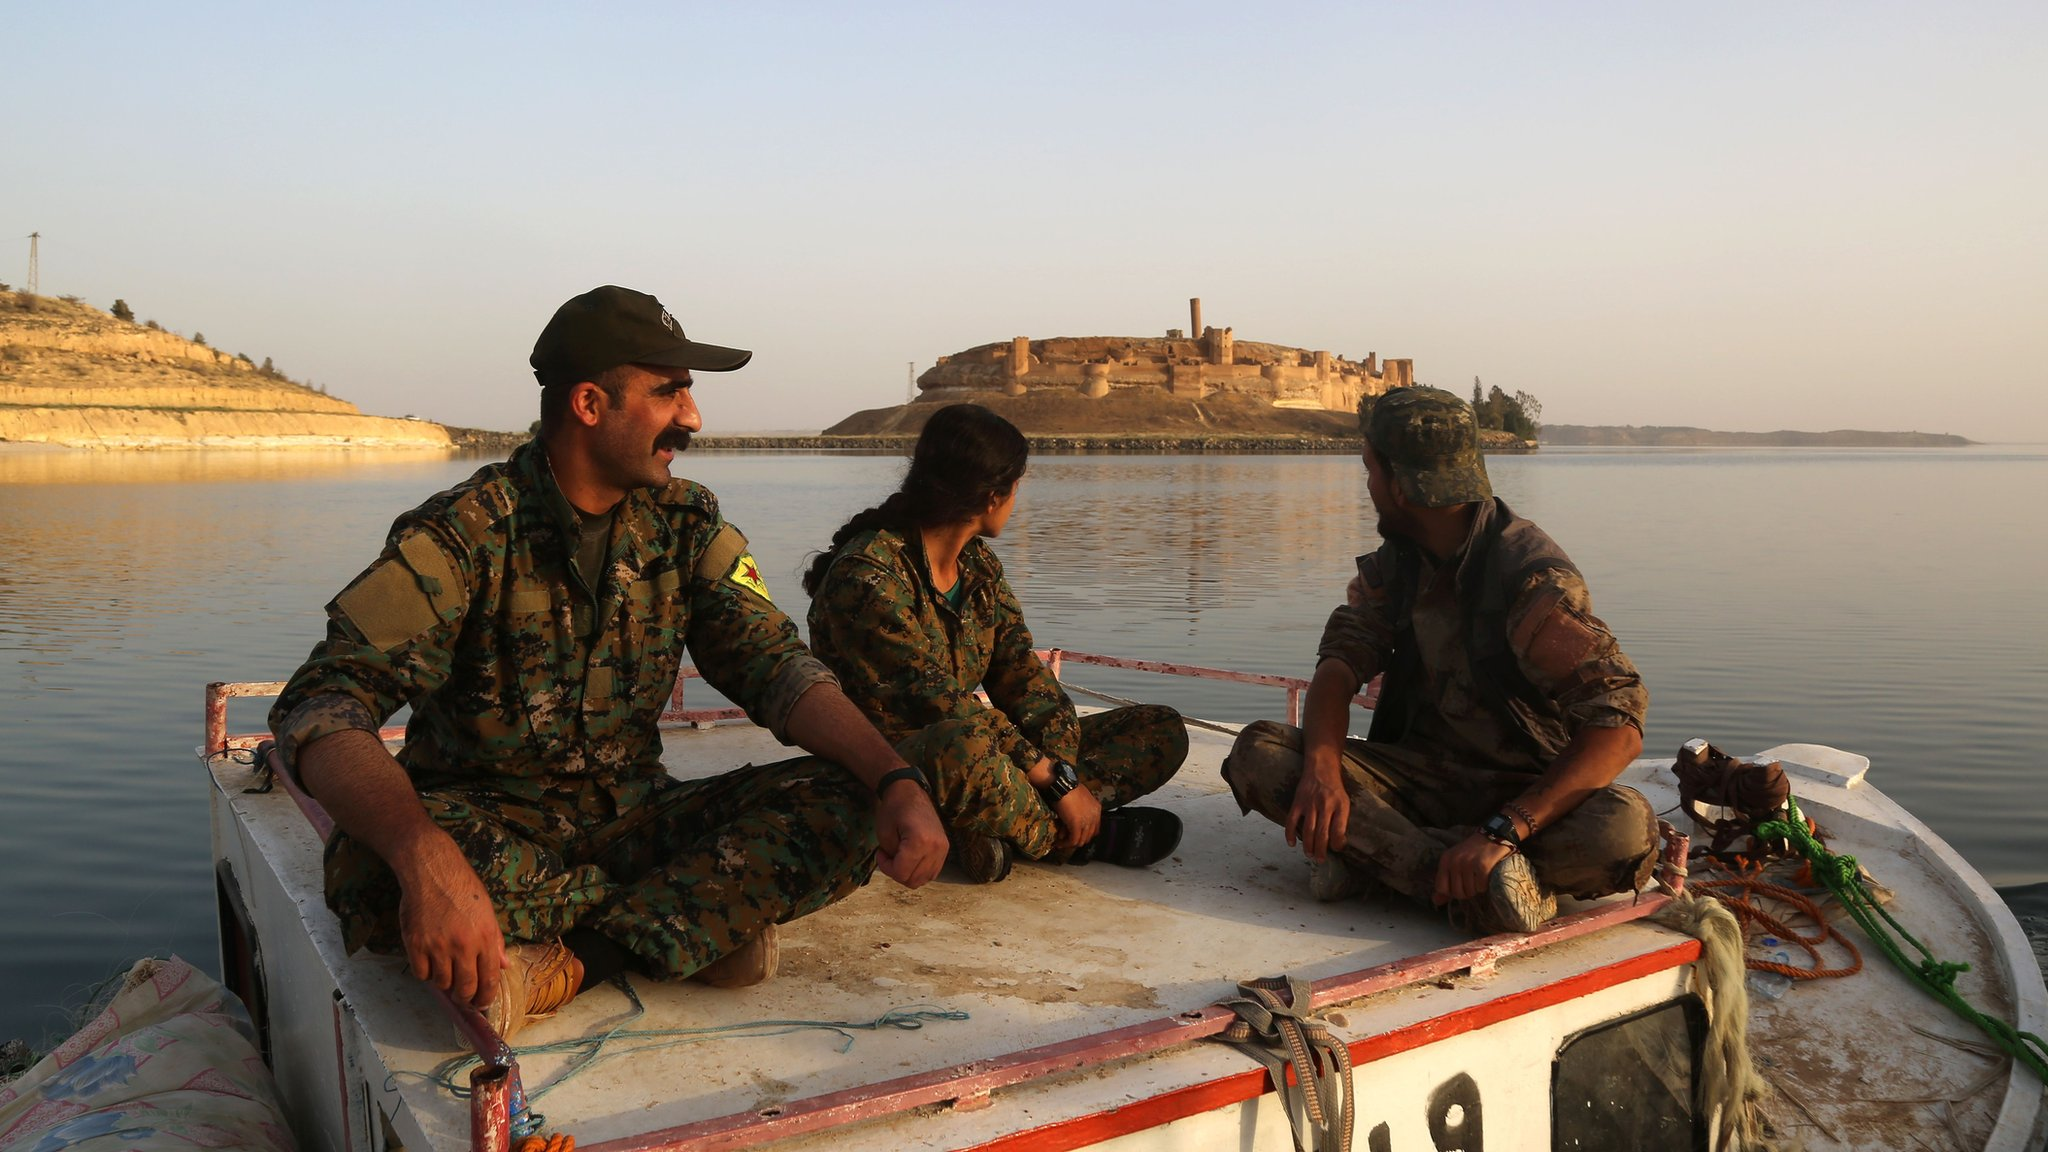 Syria war: IS driven back in Tabqa, US-backed fighters say